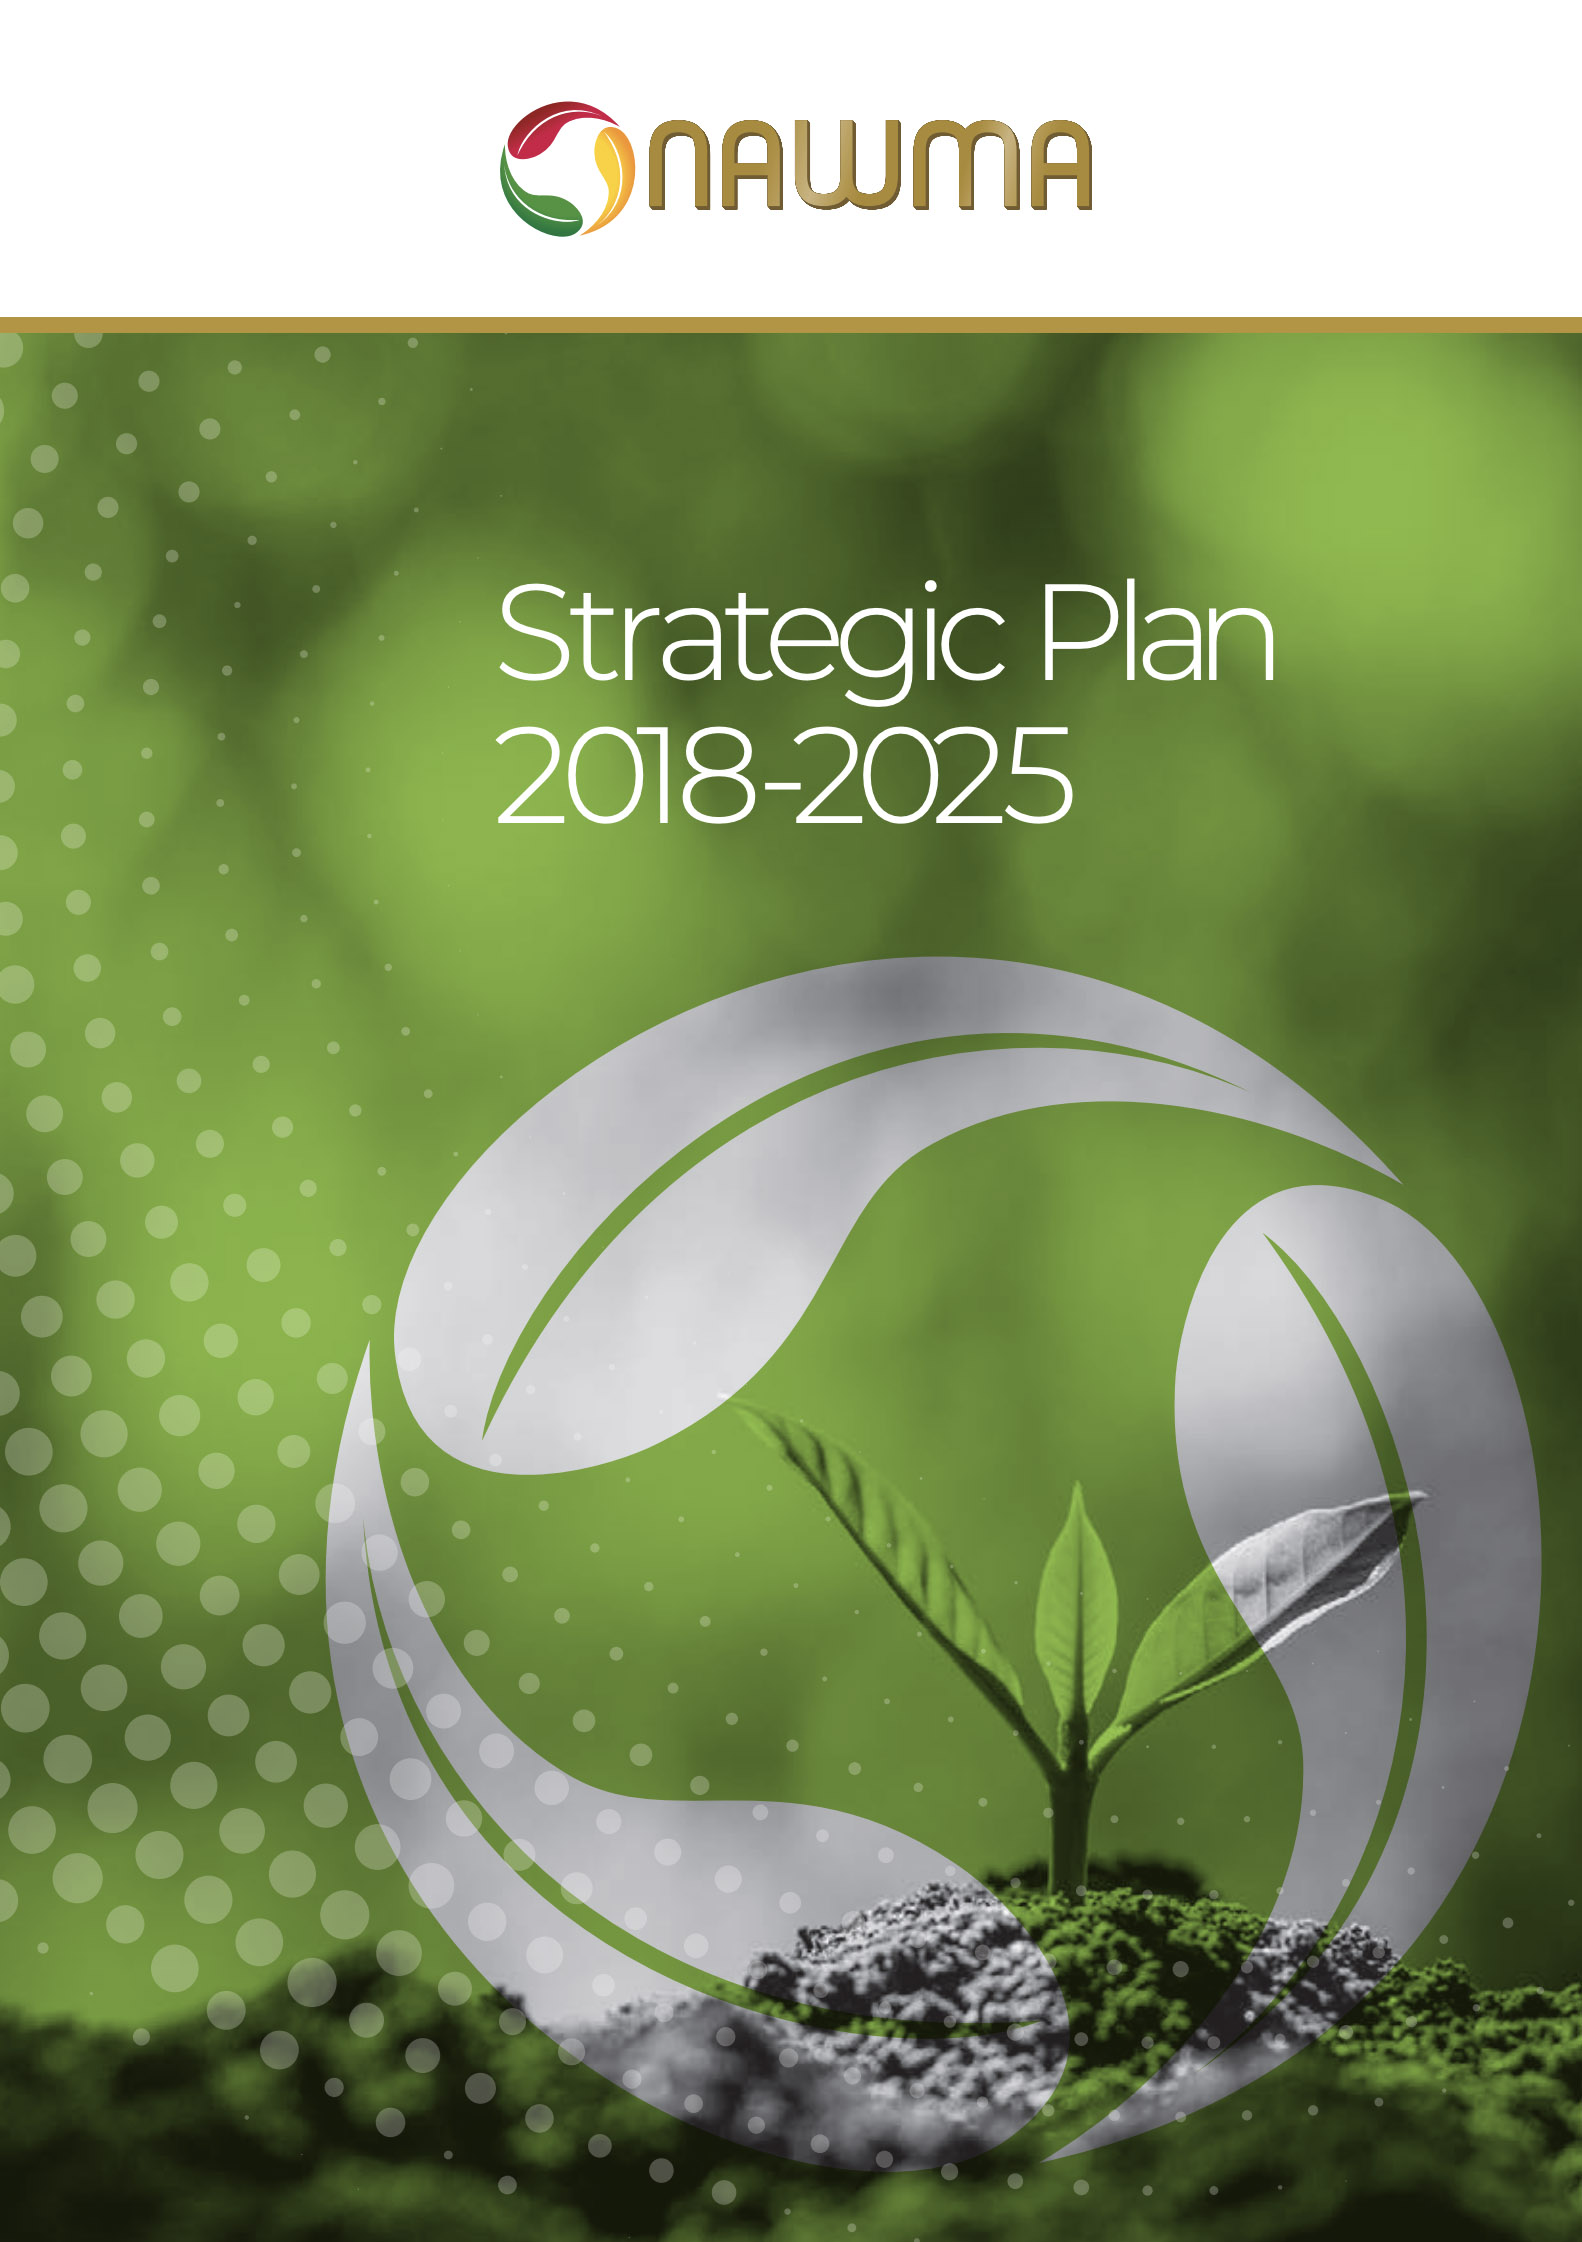 NAWMA Strategic Plan 2018-2025